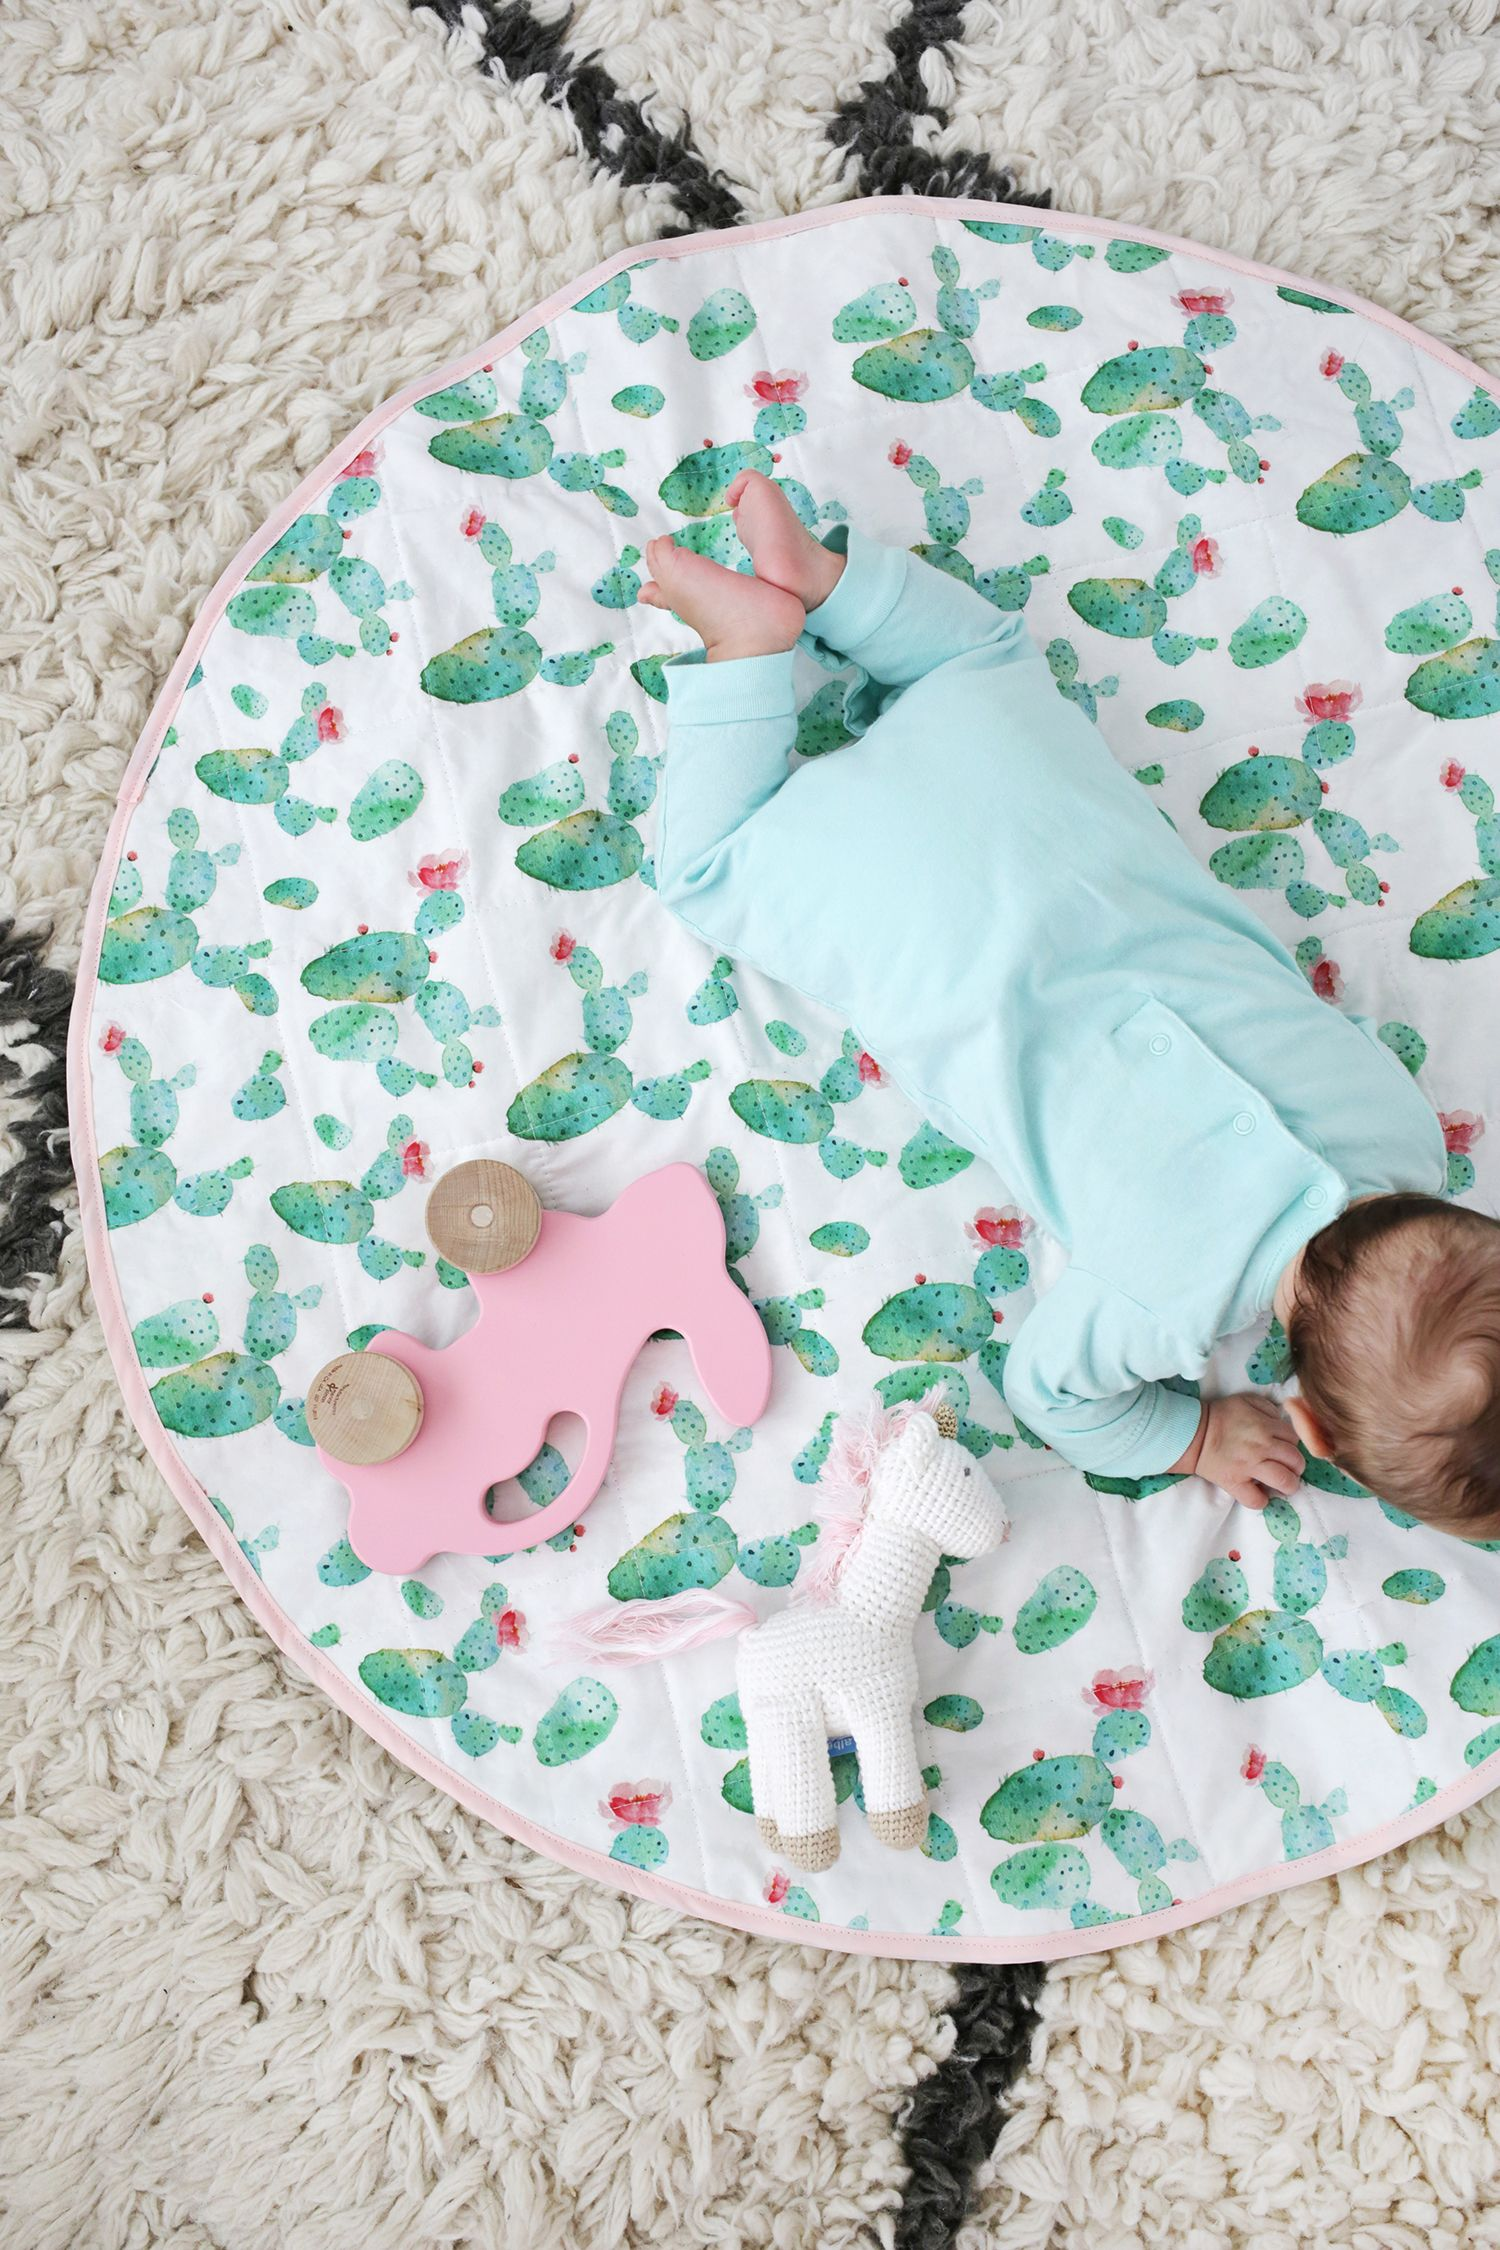 Round Quilted Play Mat Diy Kiddo Bedroom Baby Sewing